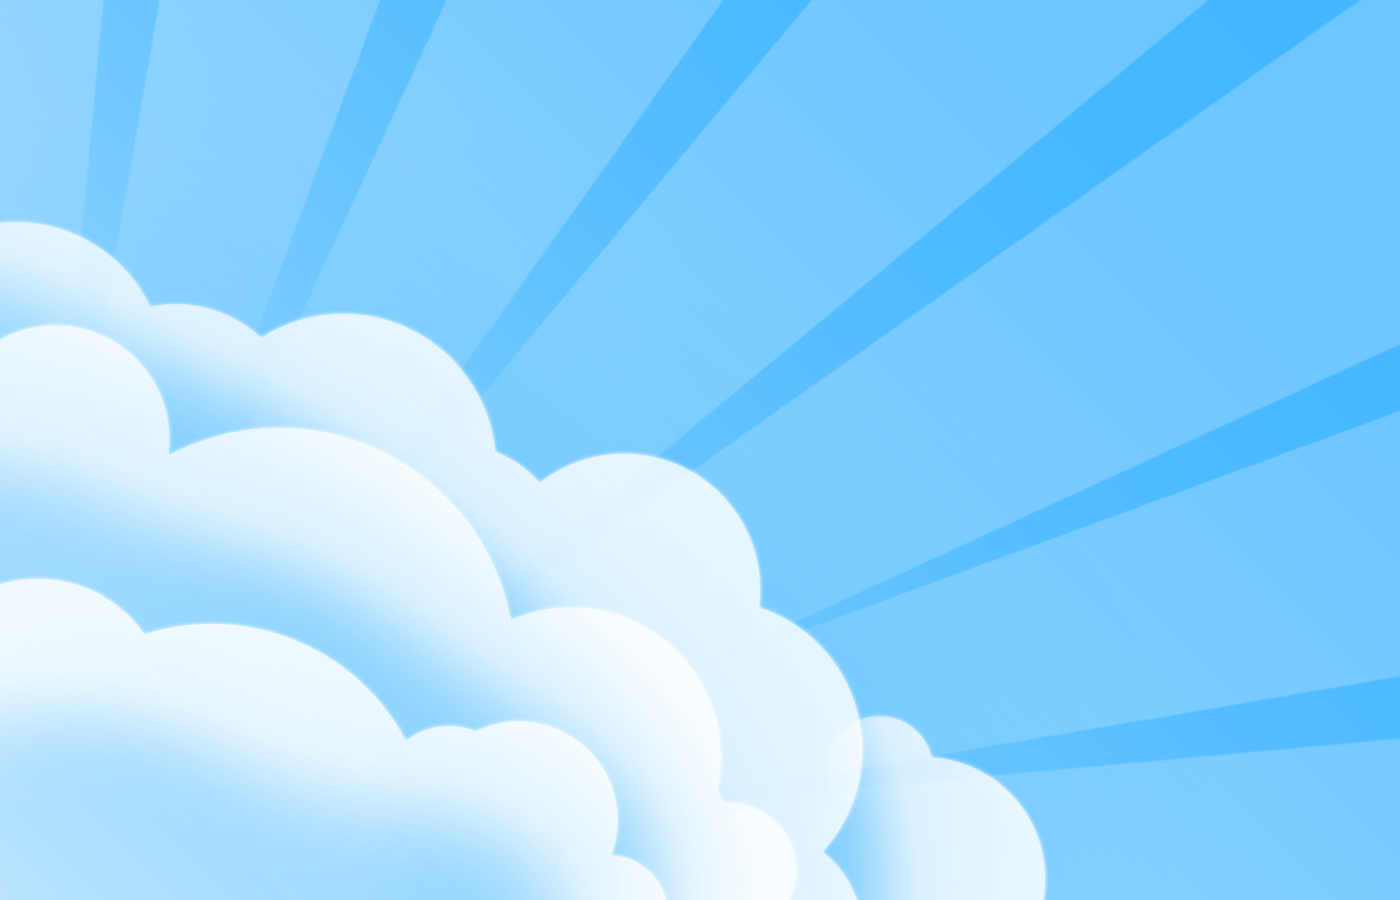 clouds, texture, background, clouds texture background, sky, download photo